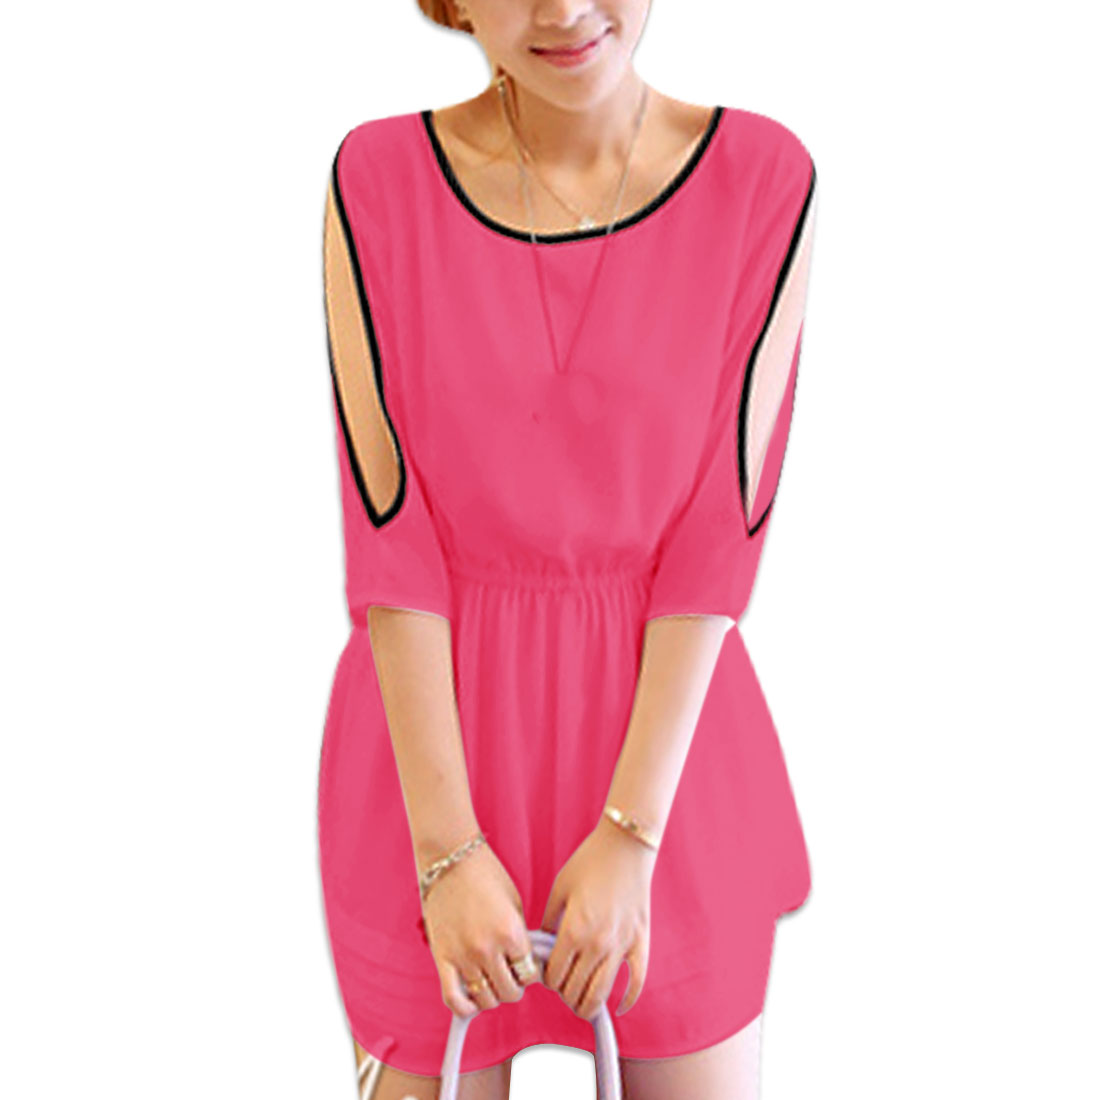 Ladies Round Neck Half Sleeve Cut Out Lining Dress Fuchsia S